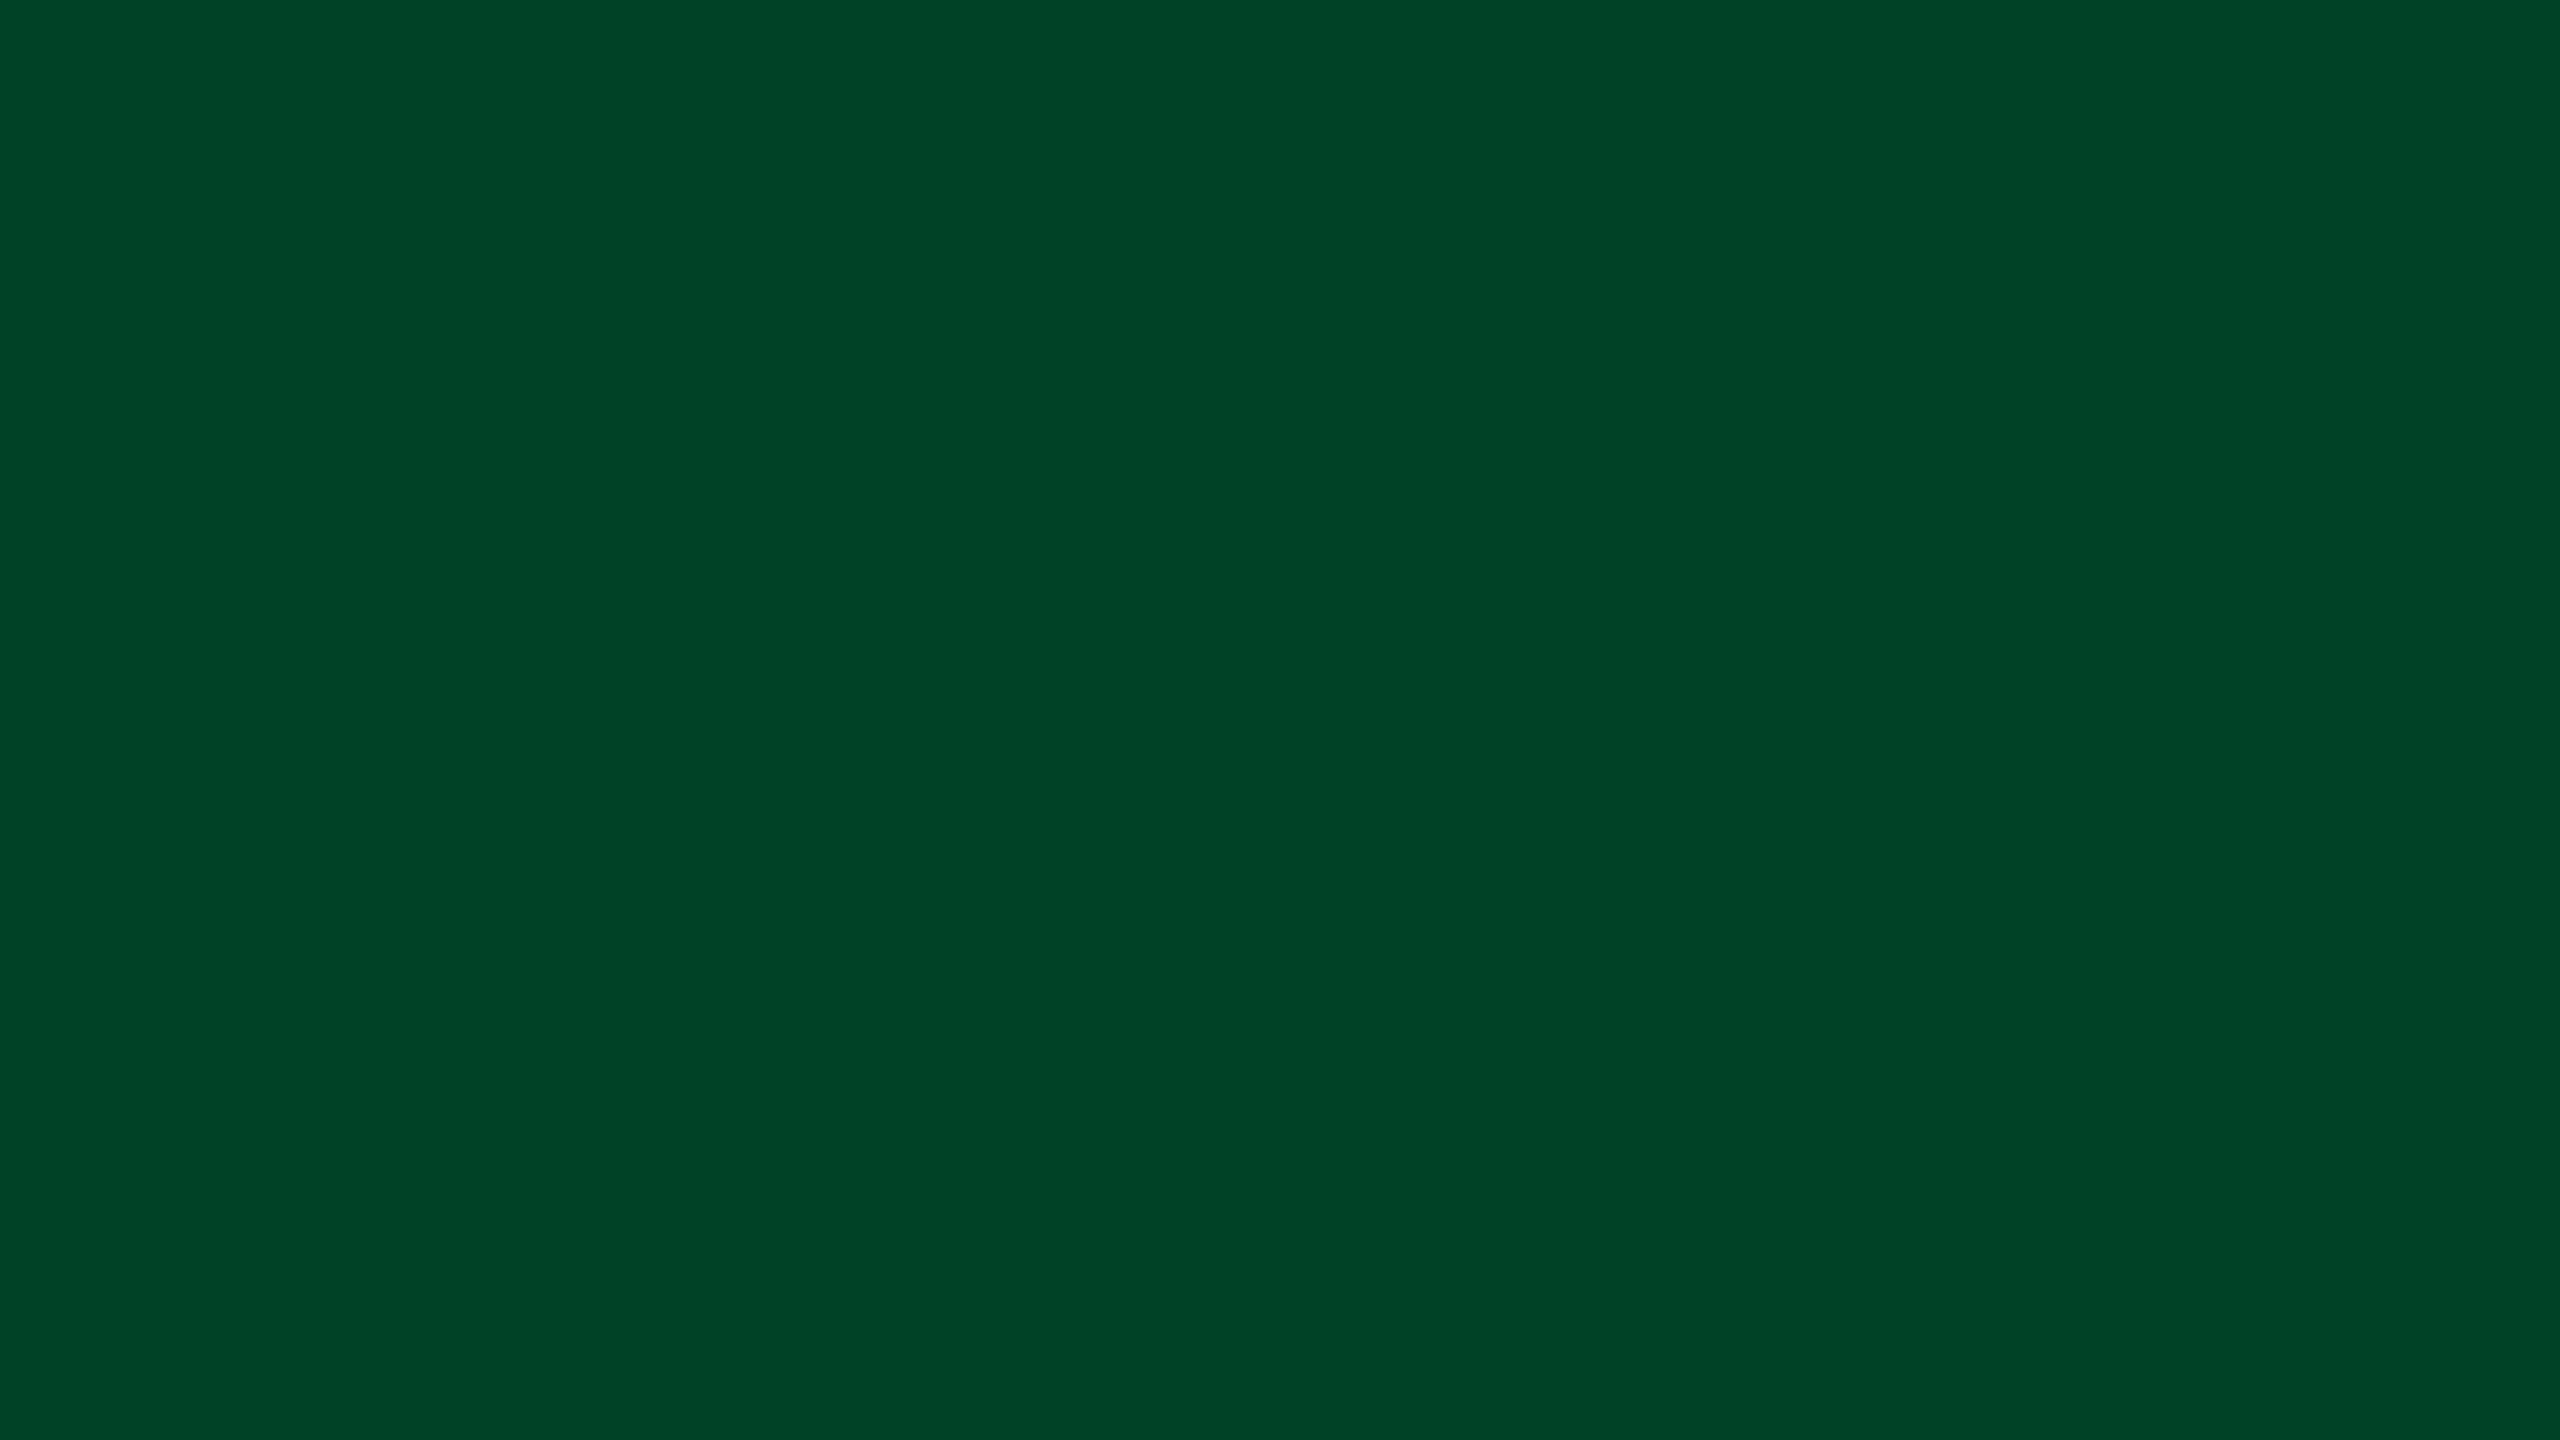 2560x1440 British Racing Green Solid Color Background